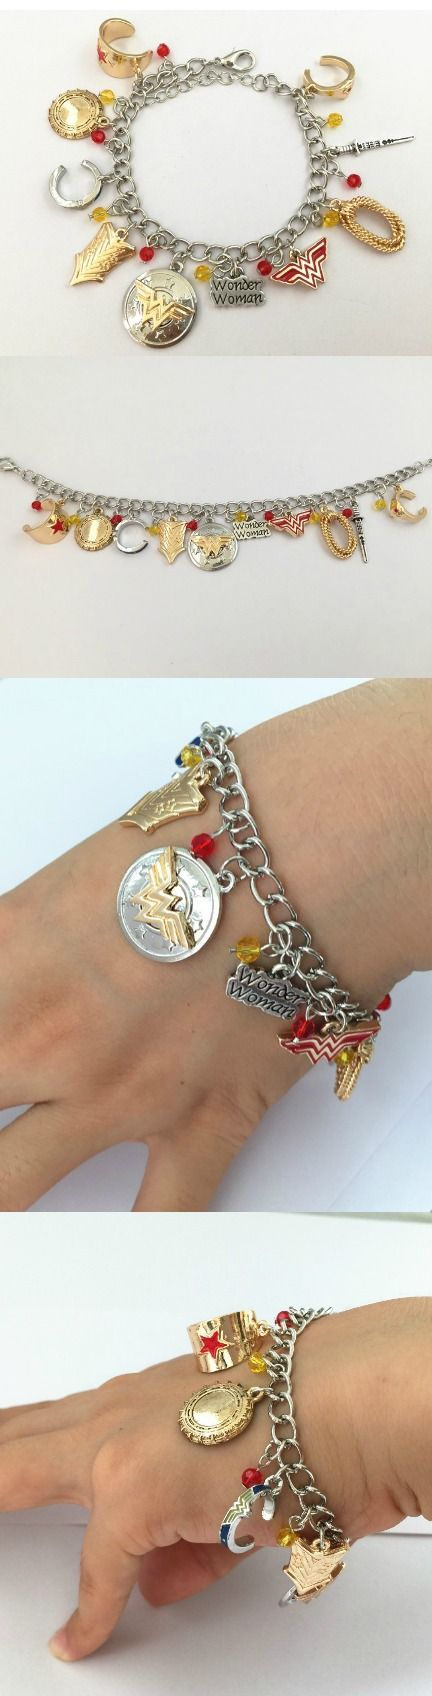 Wonder Woman Charm Bracelet! Click The Image To Buy It Now or Tag Someone You Want To Buy This For. #WonderWoman